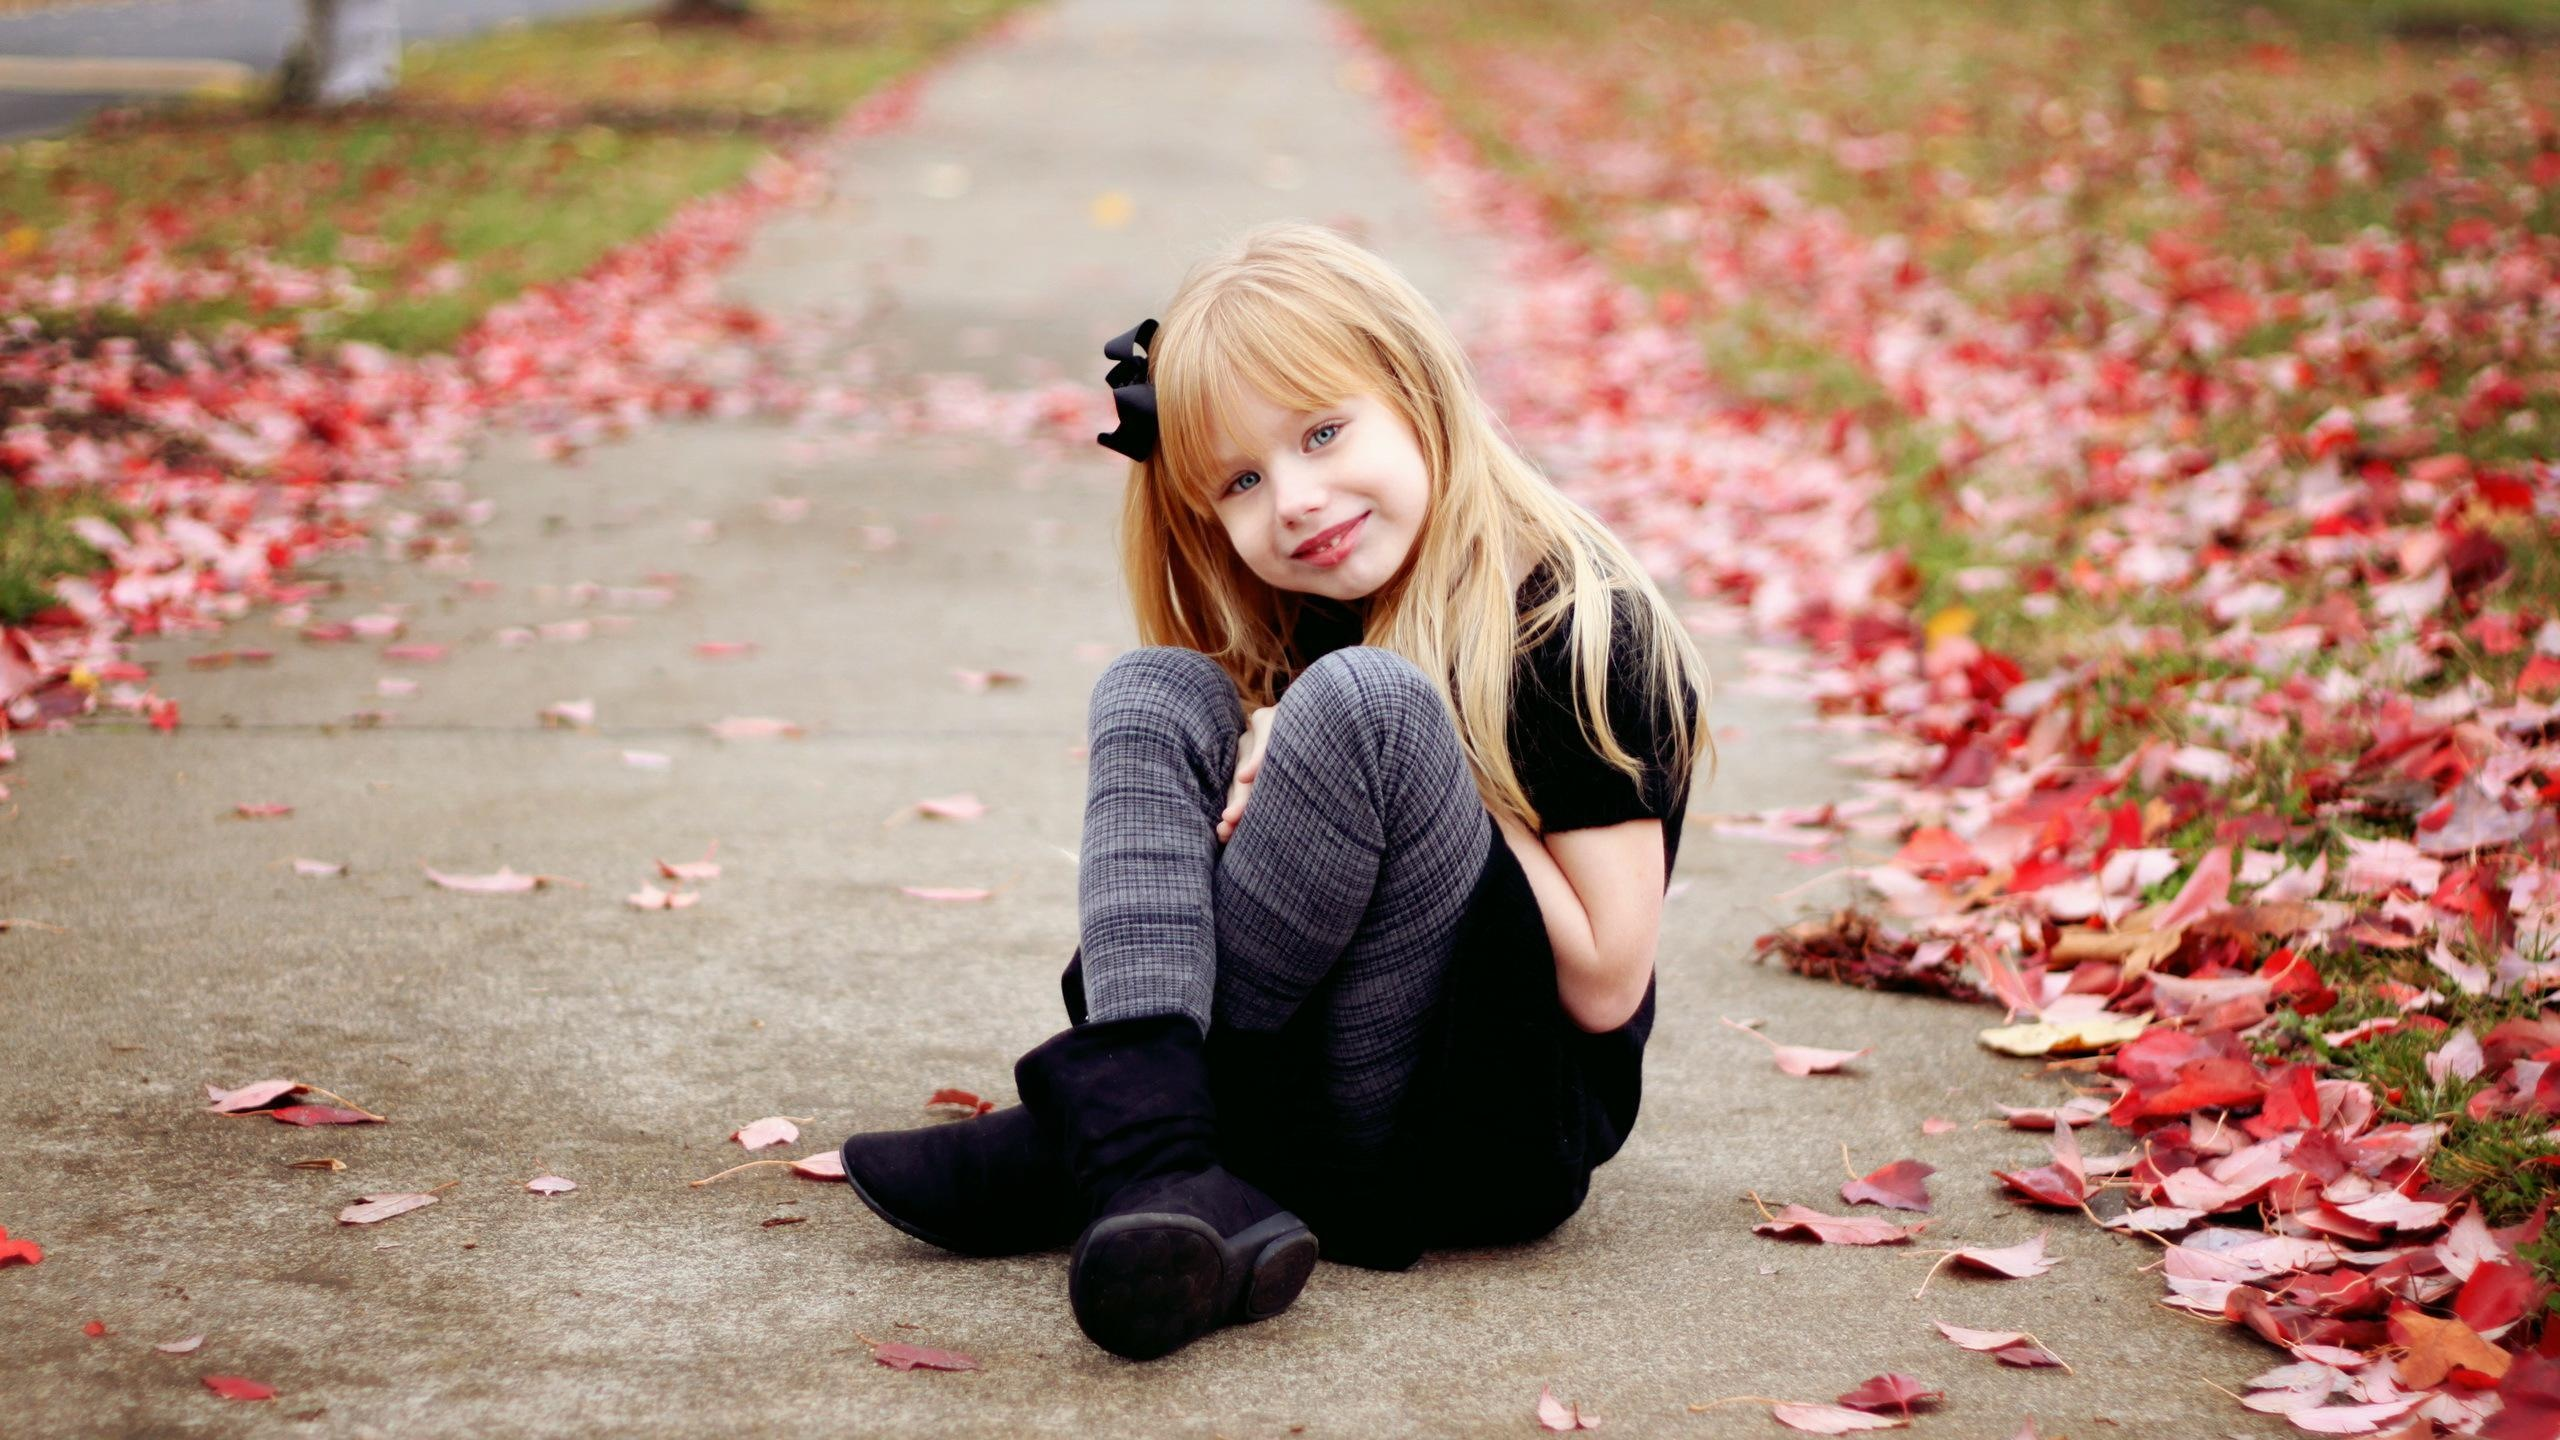 Cute Girl Smile Fence Flower HD Wallpapers 2560x1440